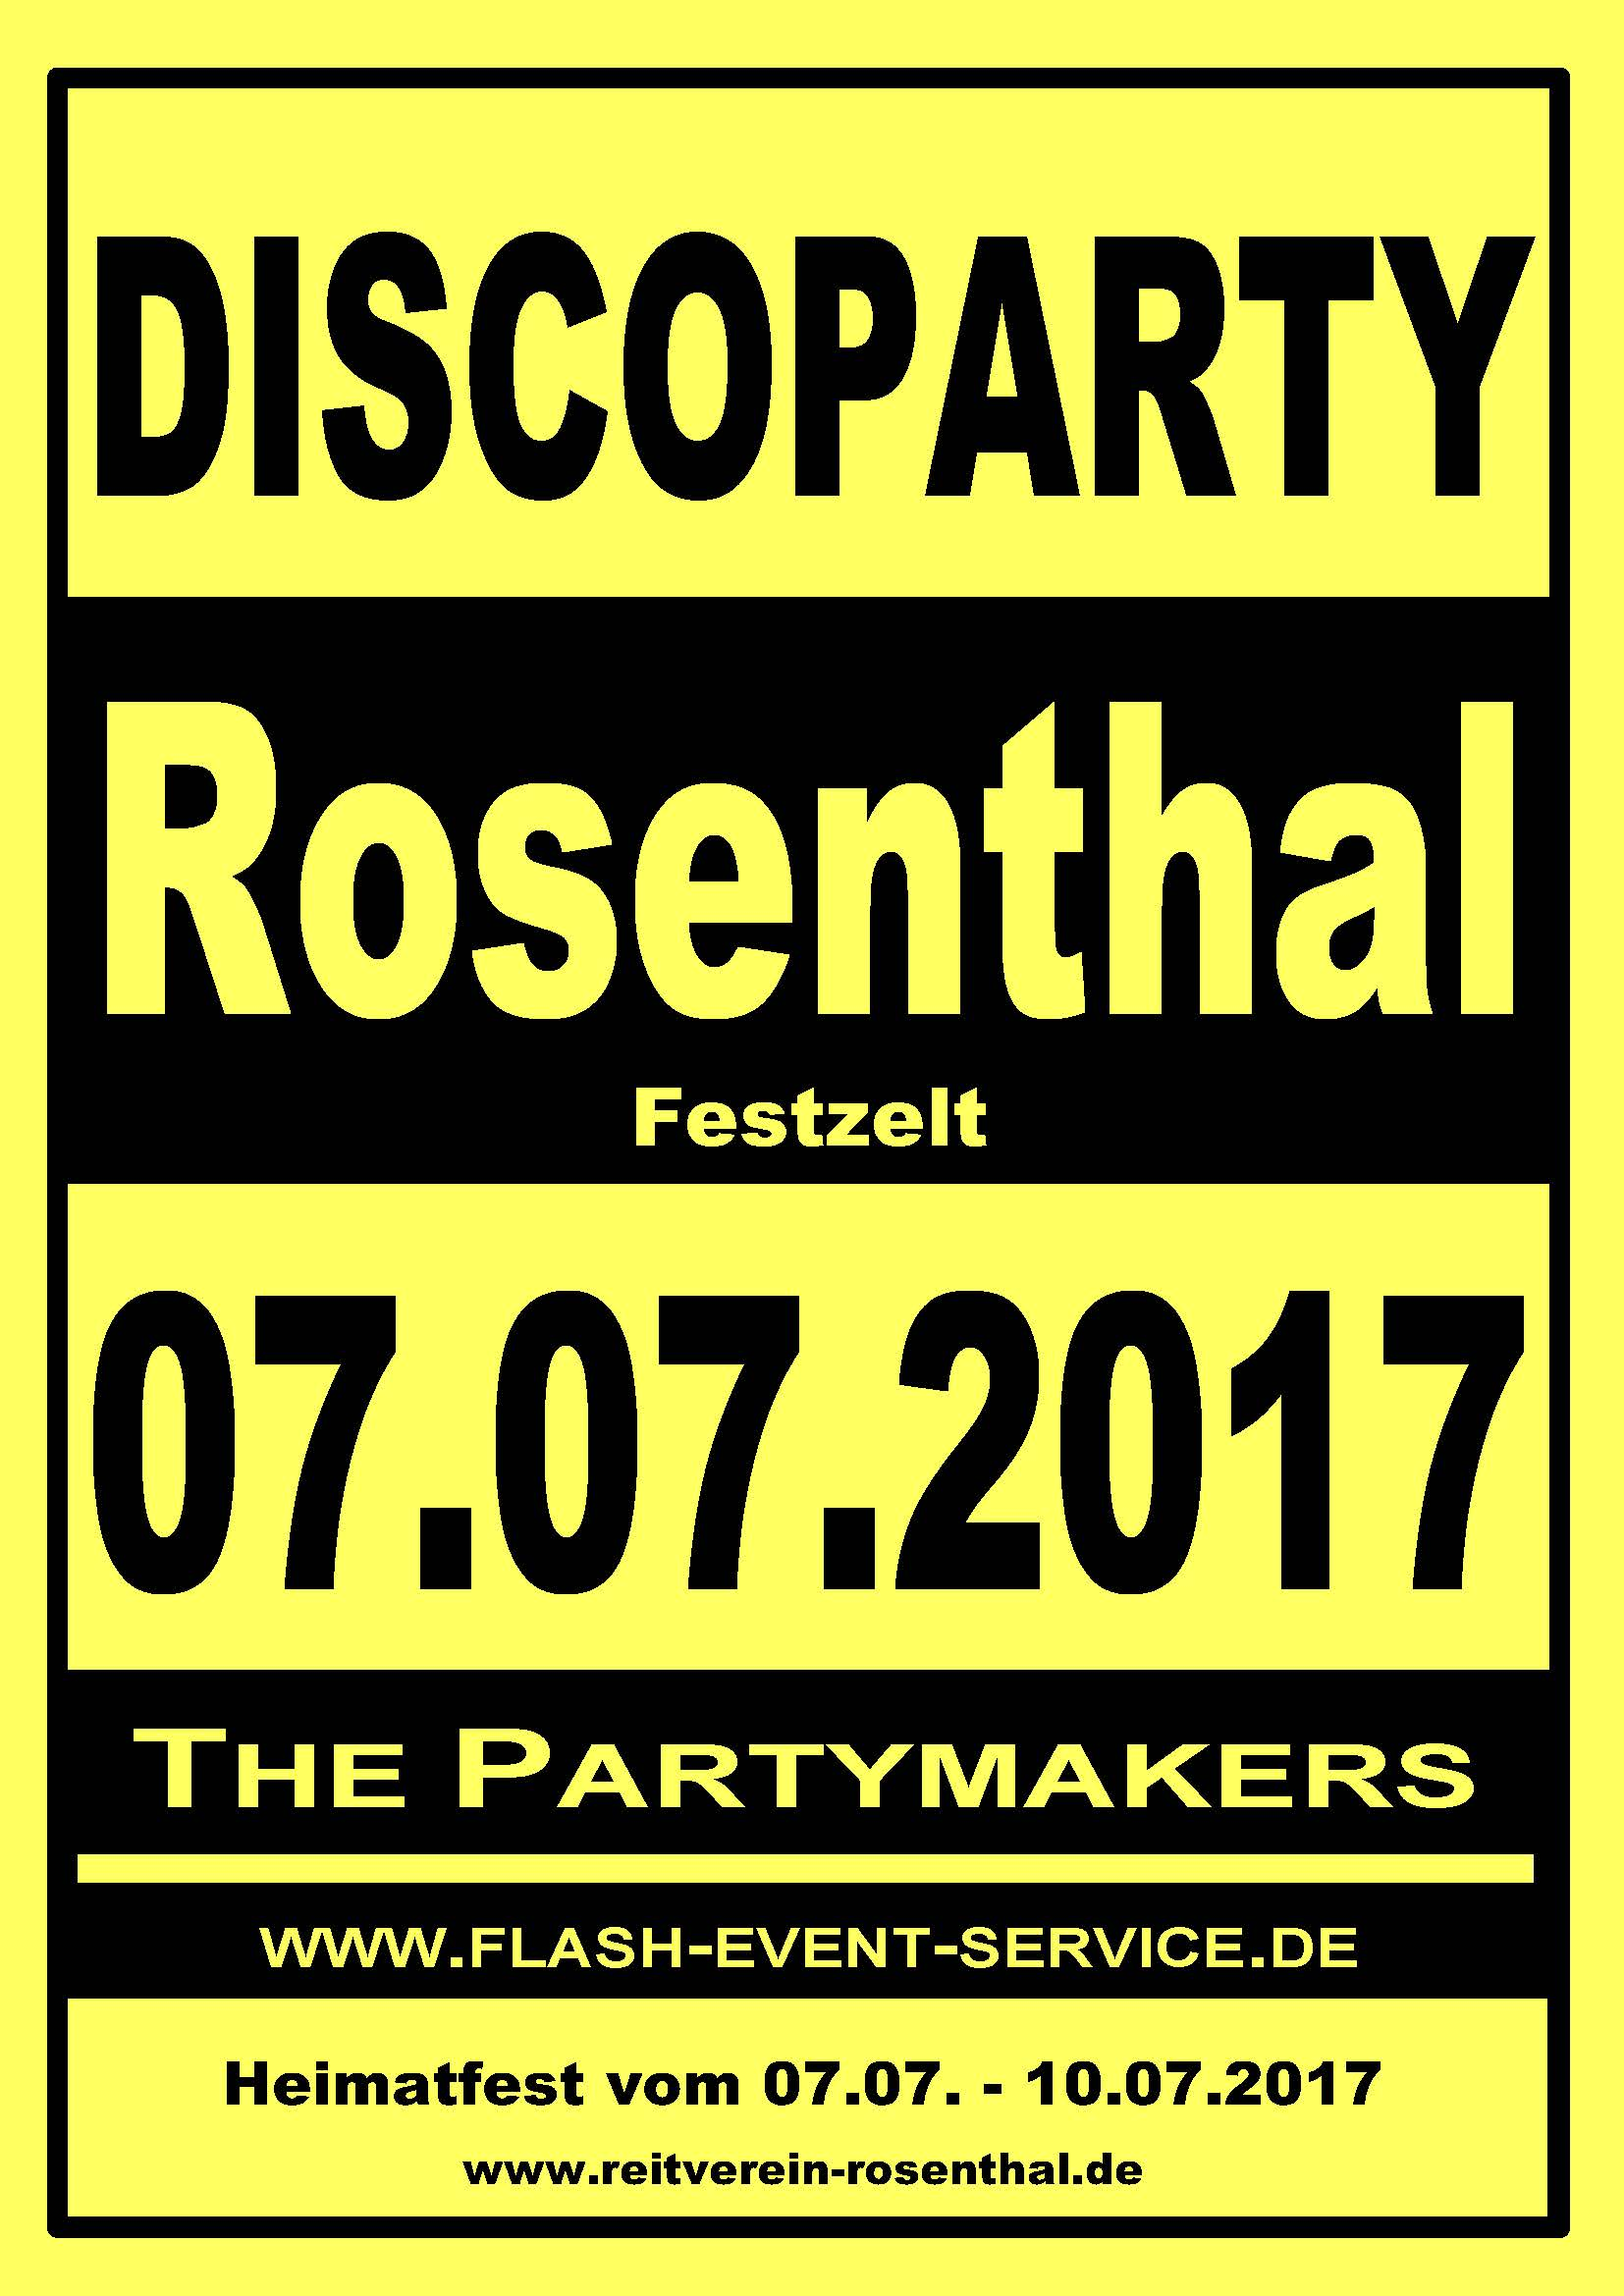 Discoparty Flyer